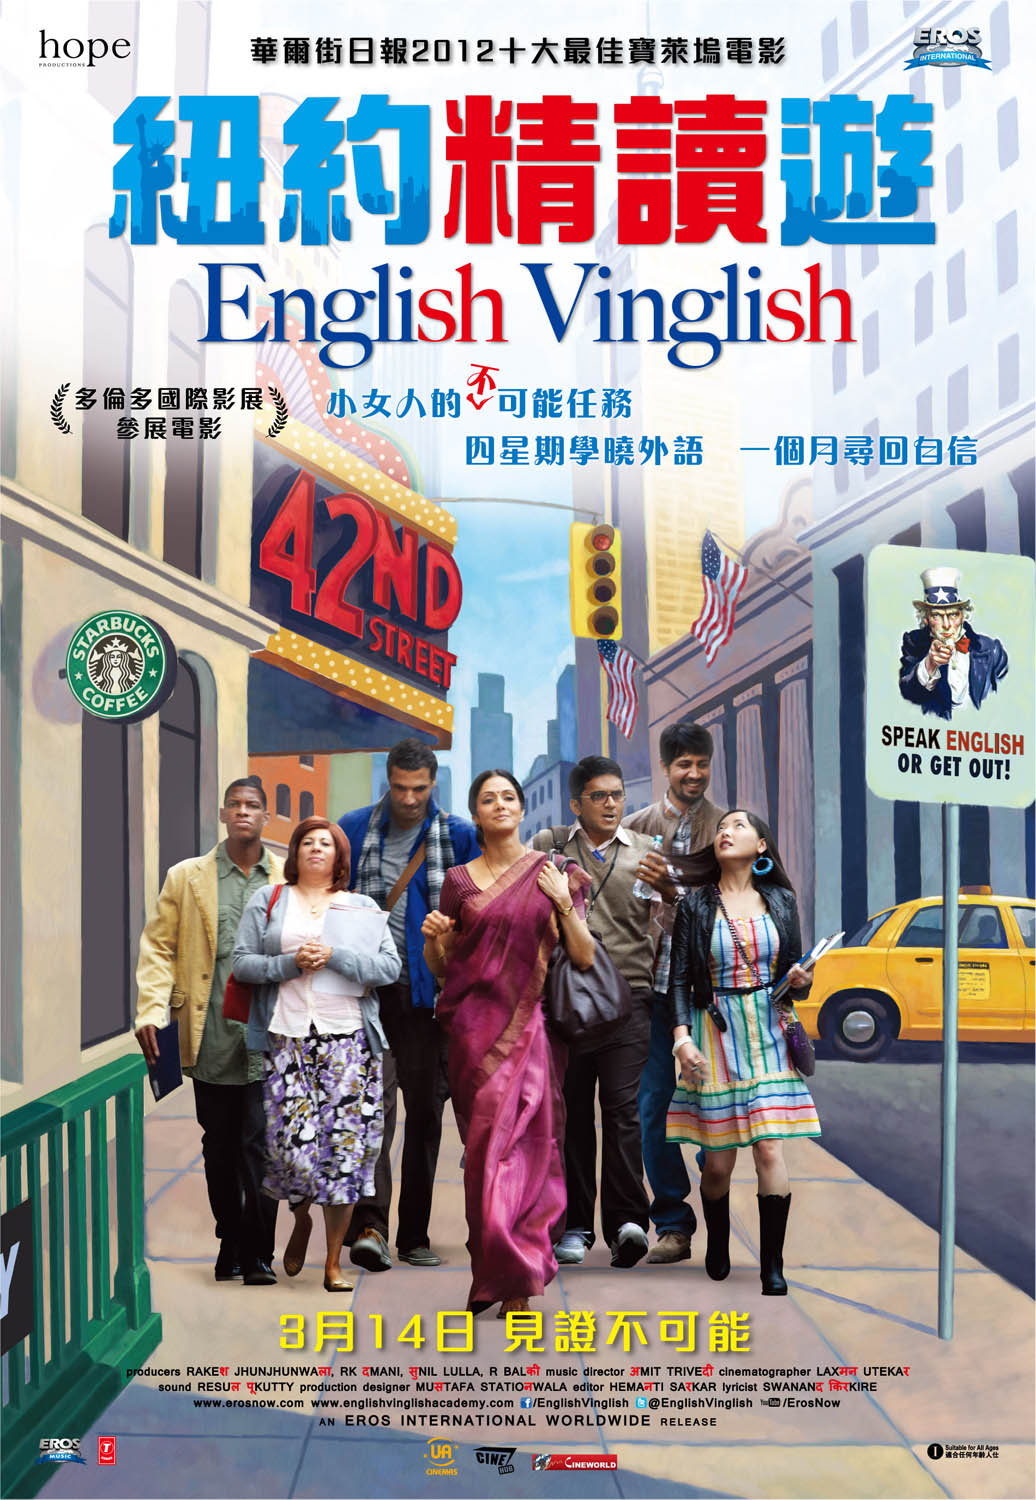 EV Poster English Vinglish a hit in Hong Kong!